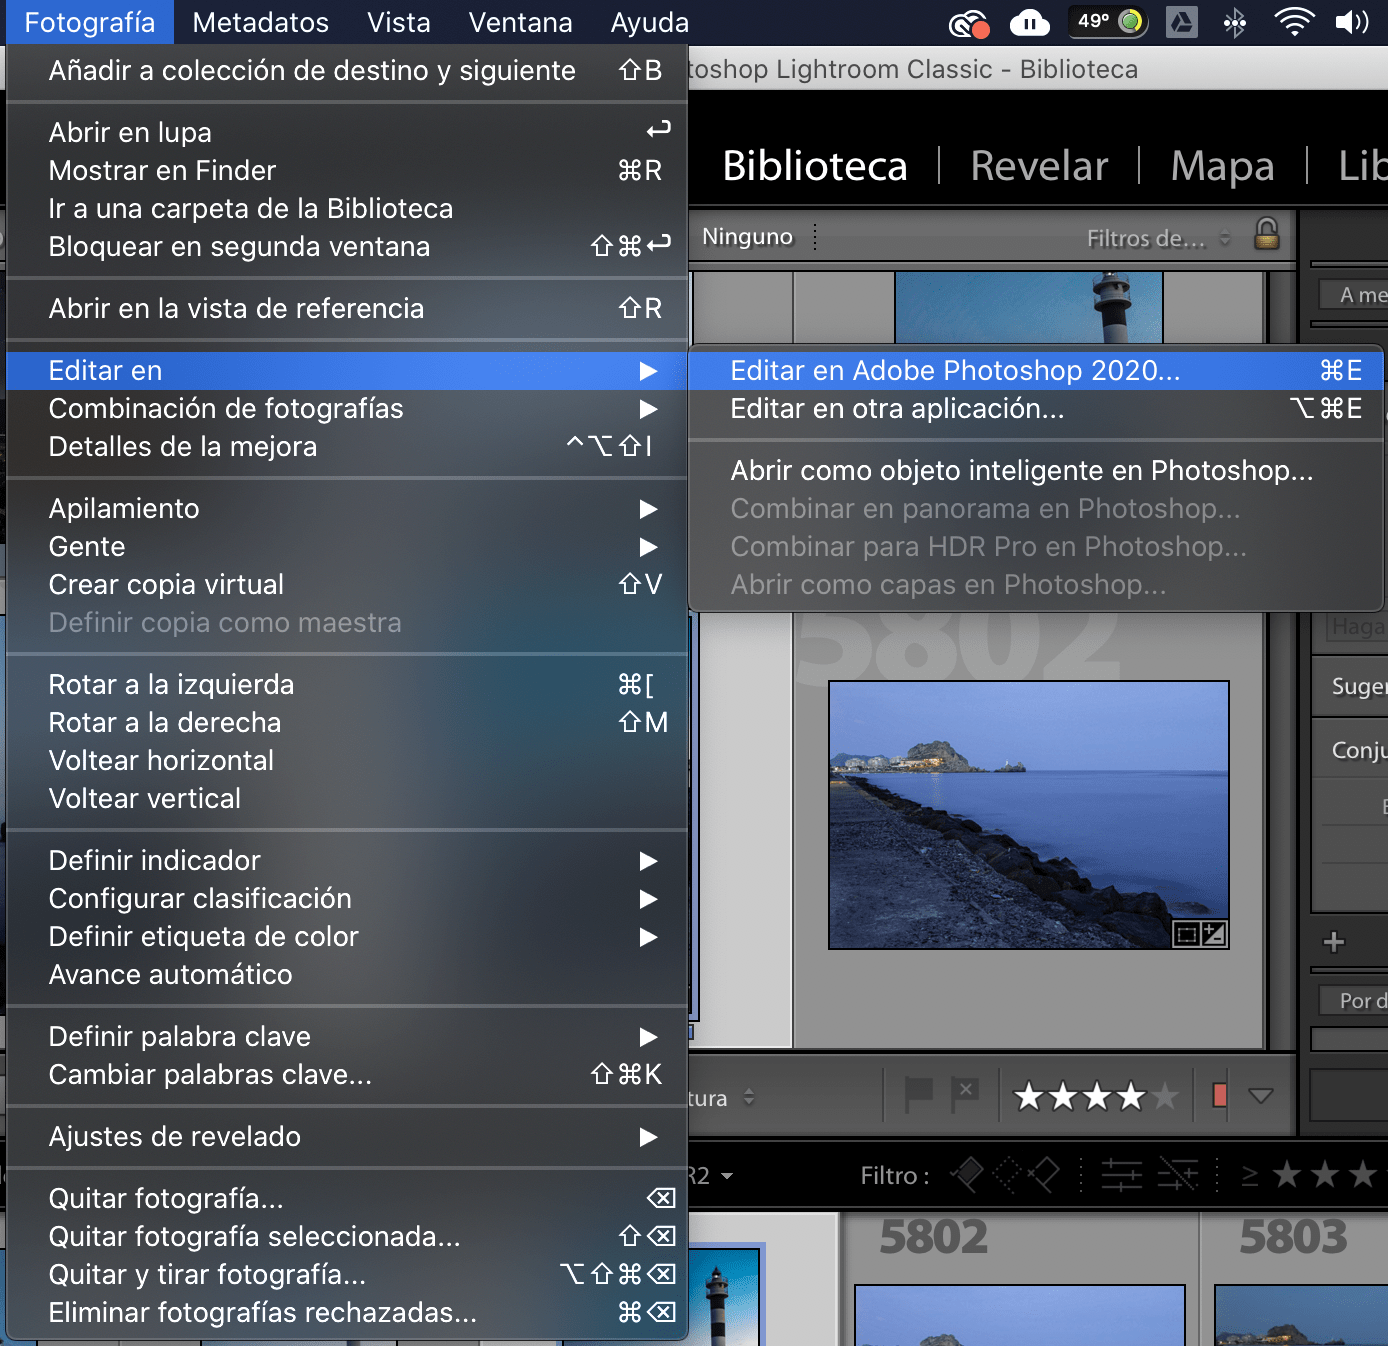 Captura de pantalla de ruta para pasar de Lightroom a Photoshop